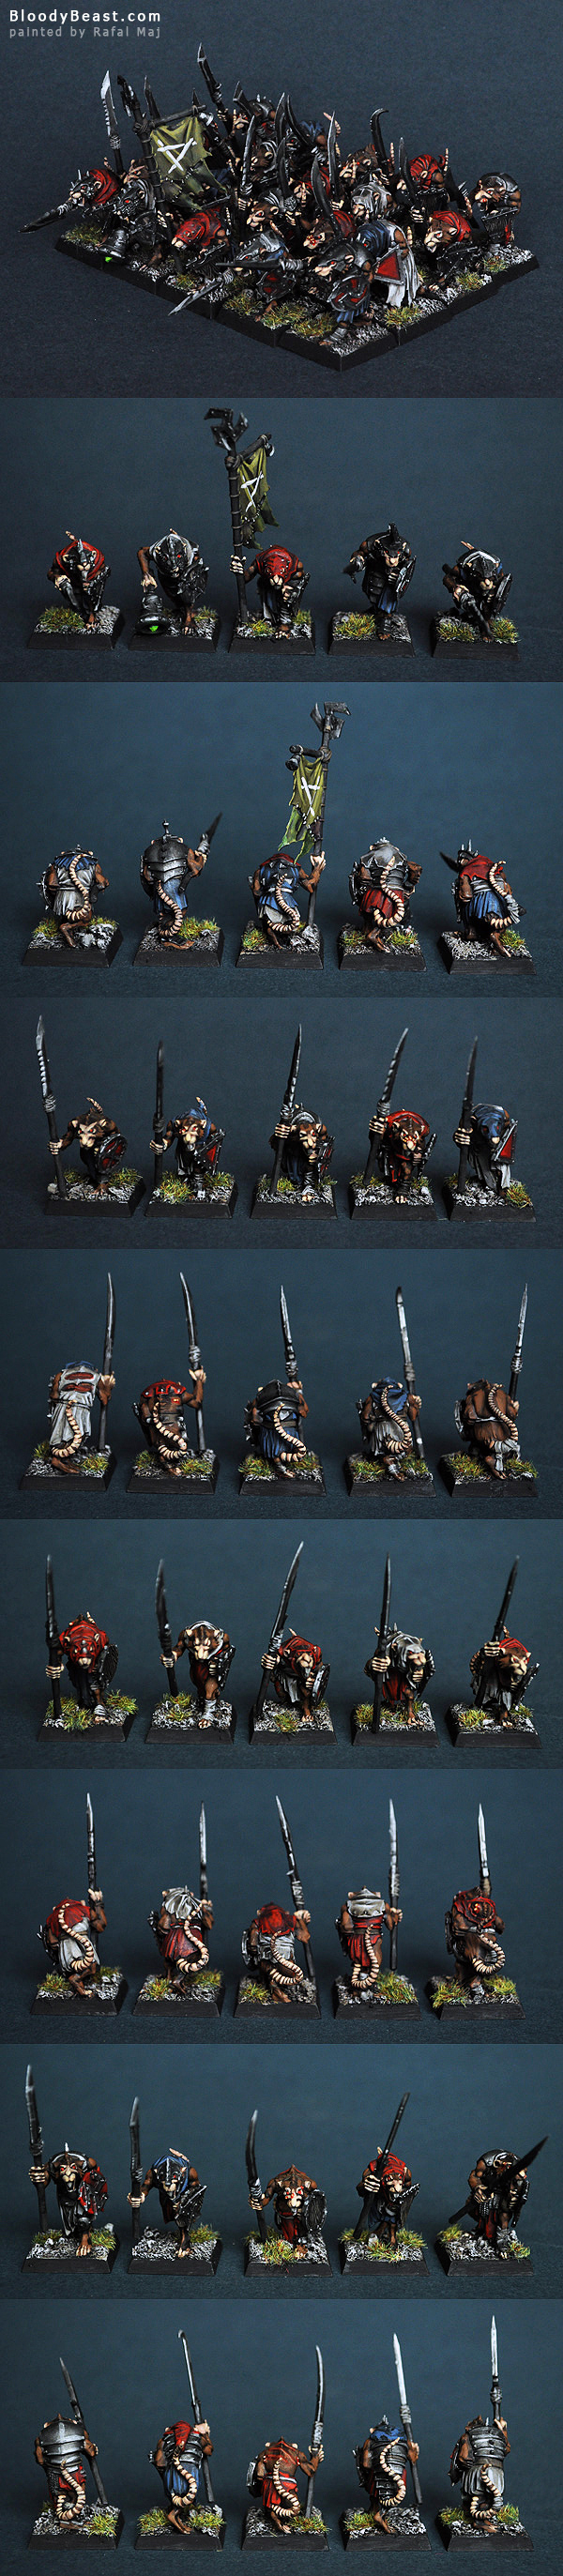 Skaven Clanrats with Spears painted by Rafal Maj (BloodyBeast.com)